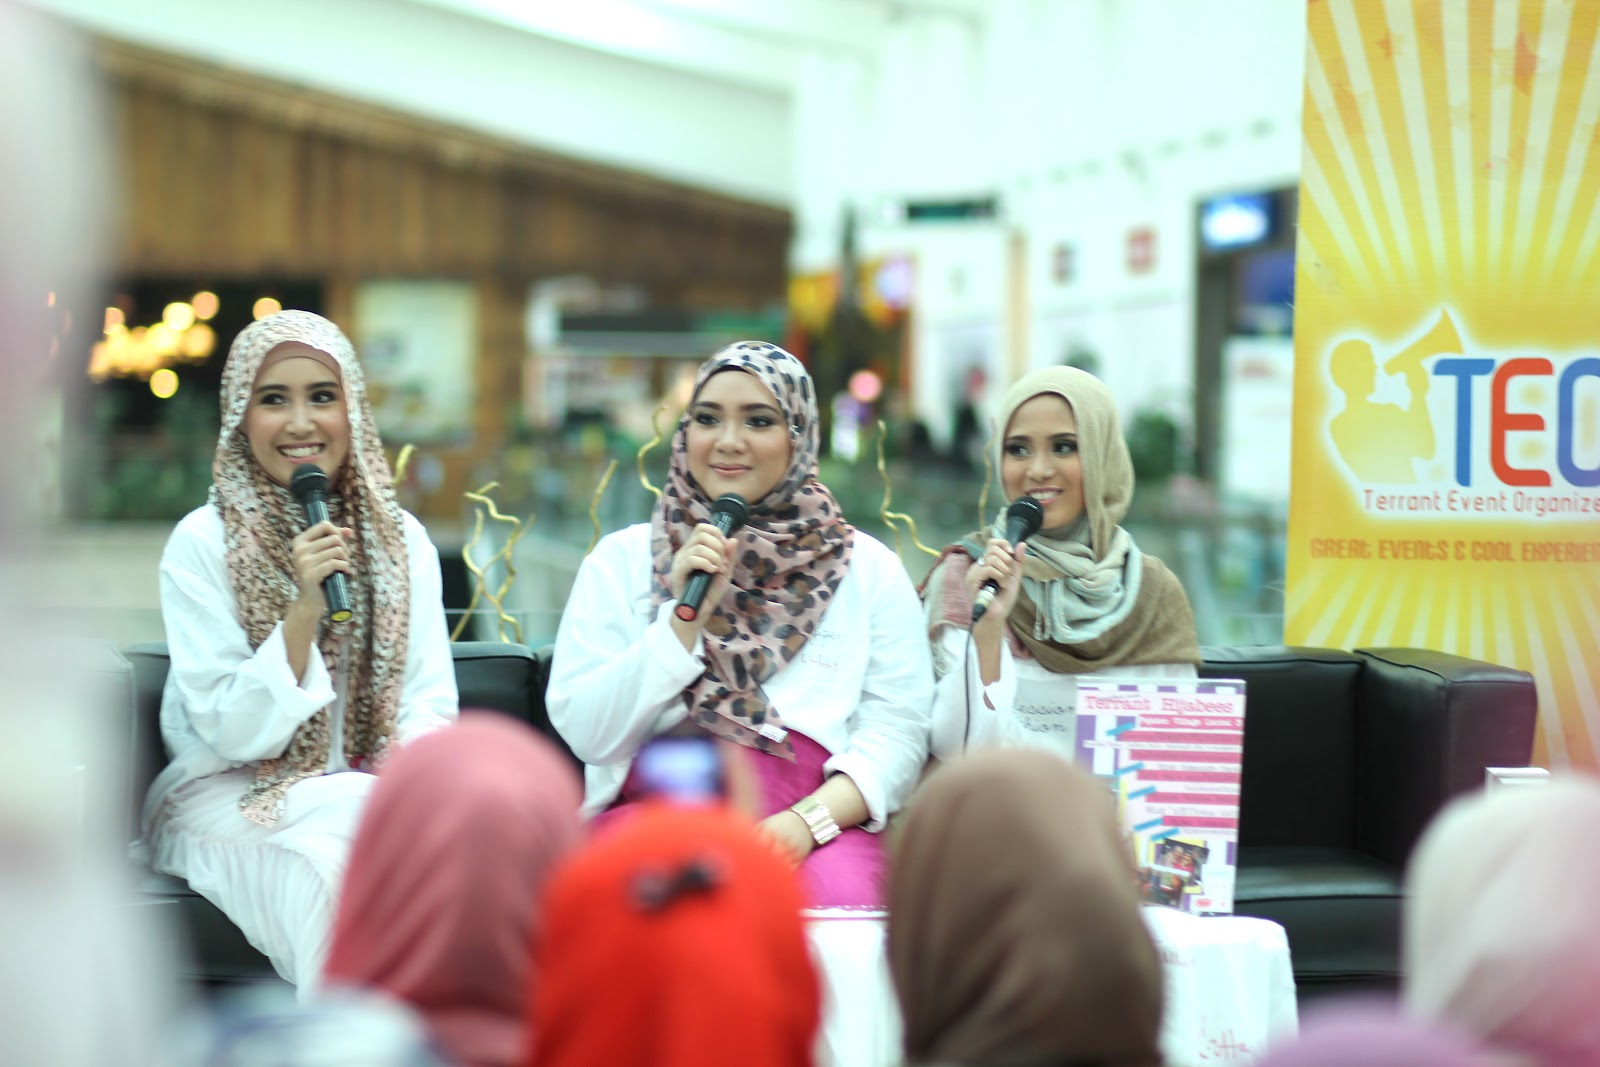 EVENT The Launching Of HIJABIST On Aug 12th 2012 Tutorial